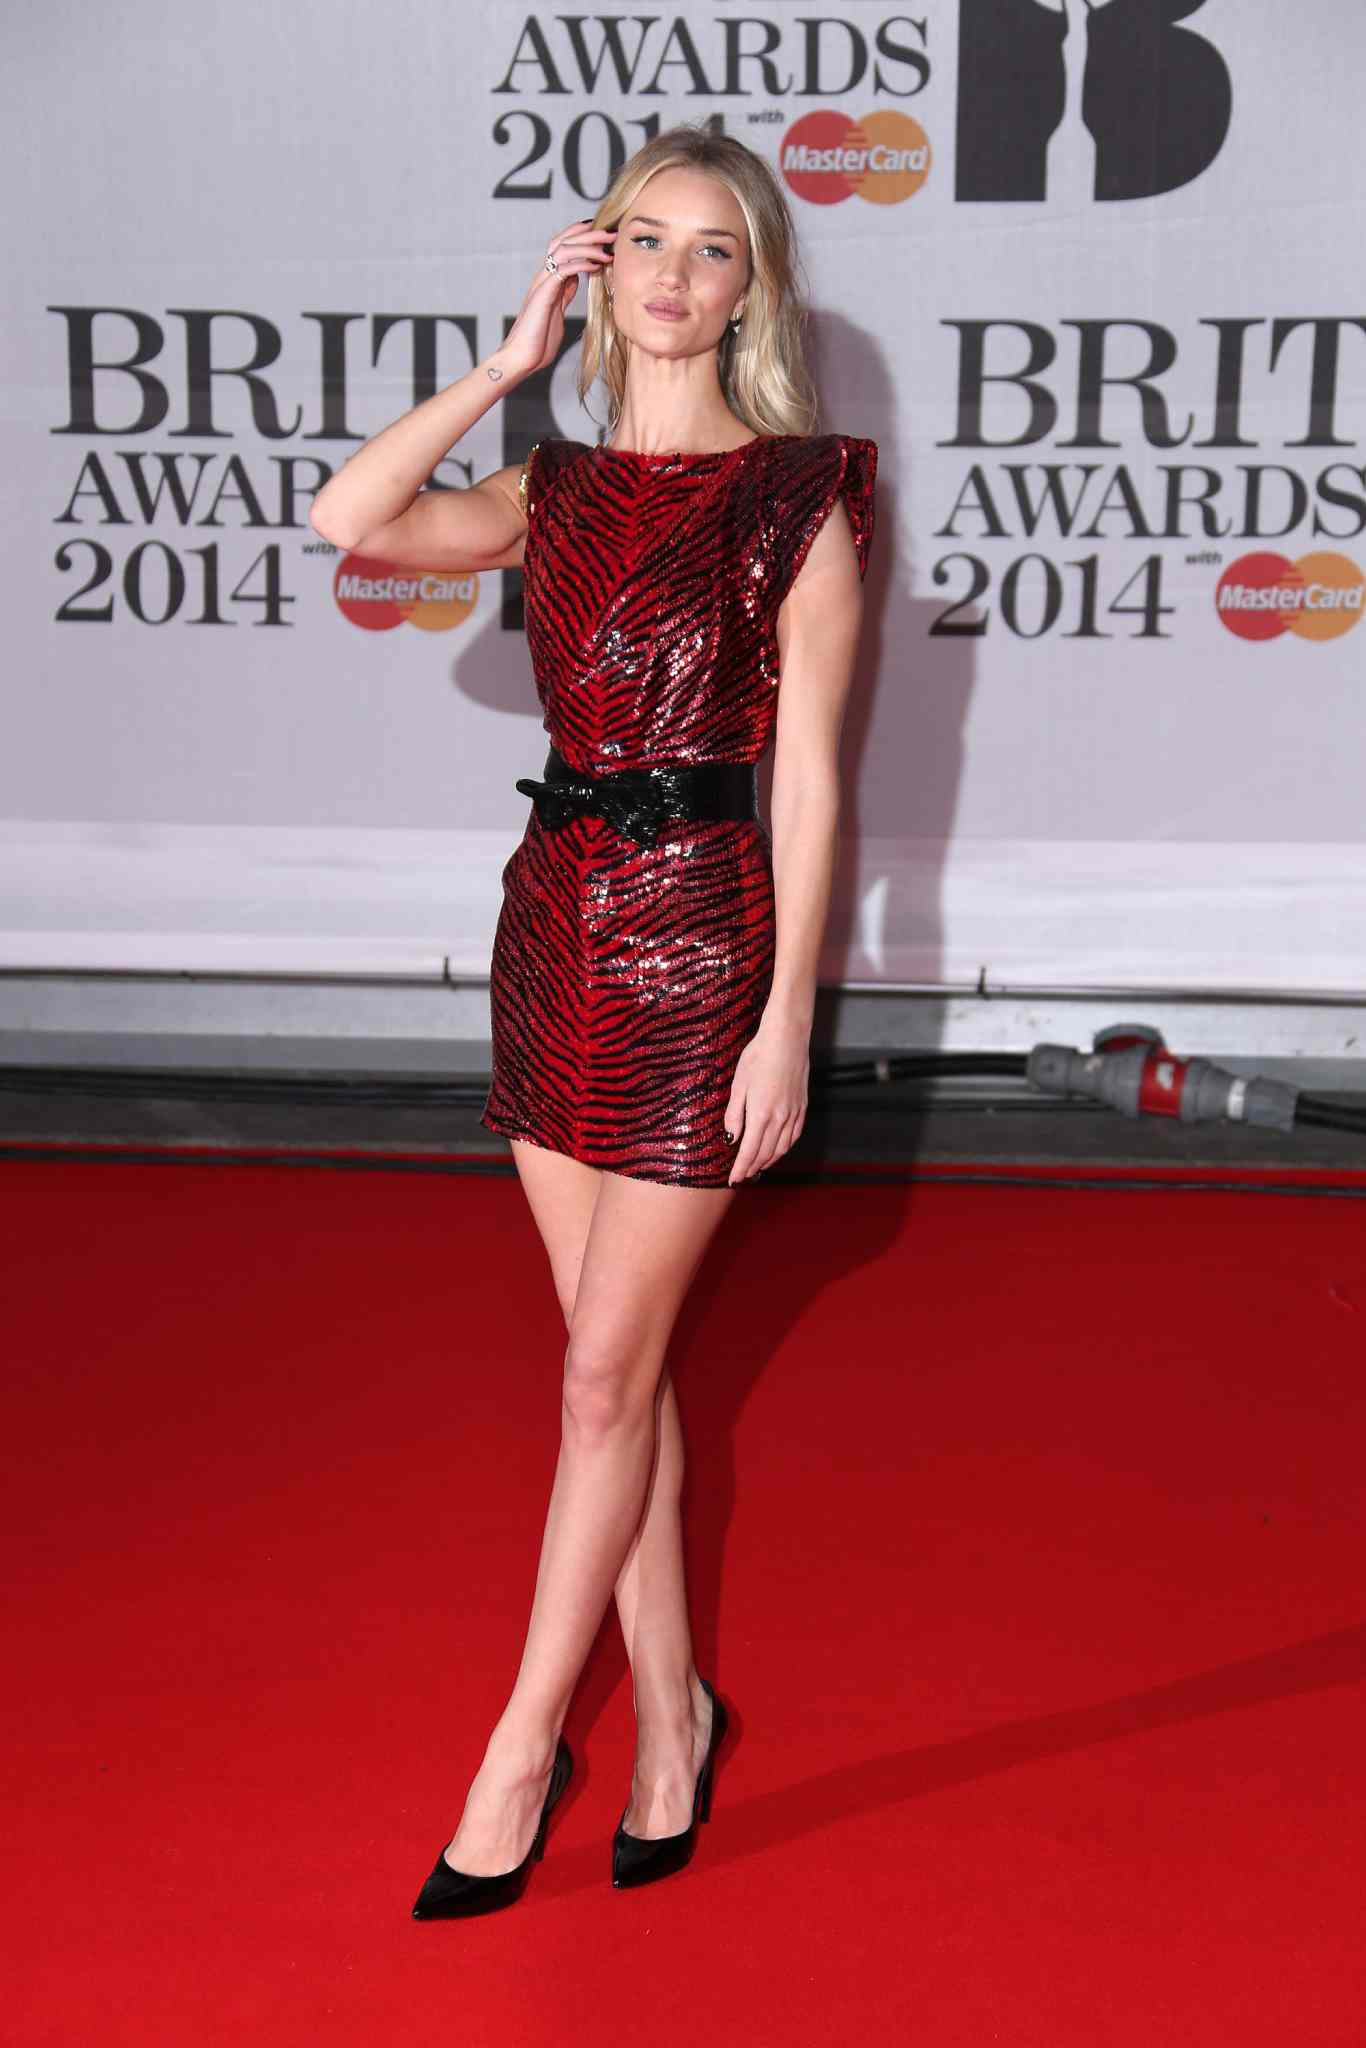 British model Rosie Huntington-Whiteley arrives at the BRIT Awards 2014 at the O2 Arena in London on Wednesday.